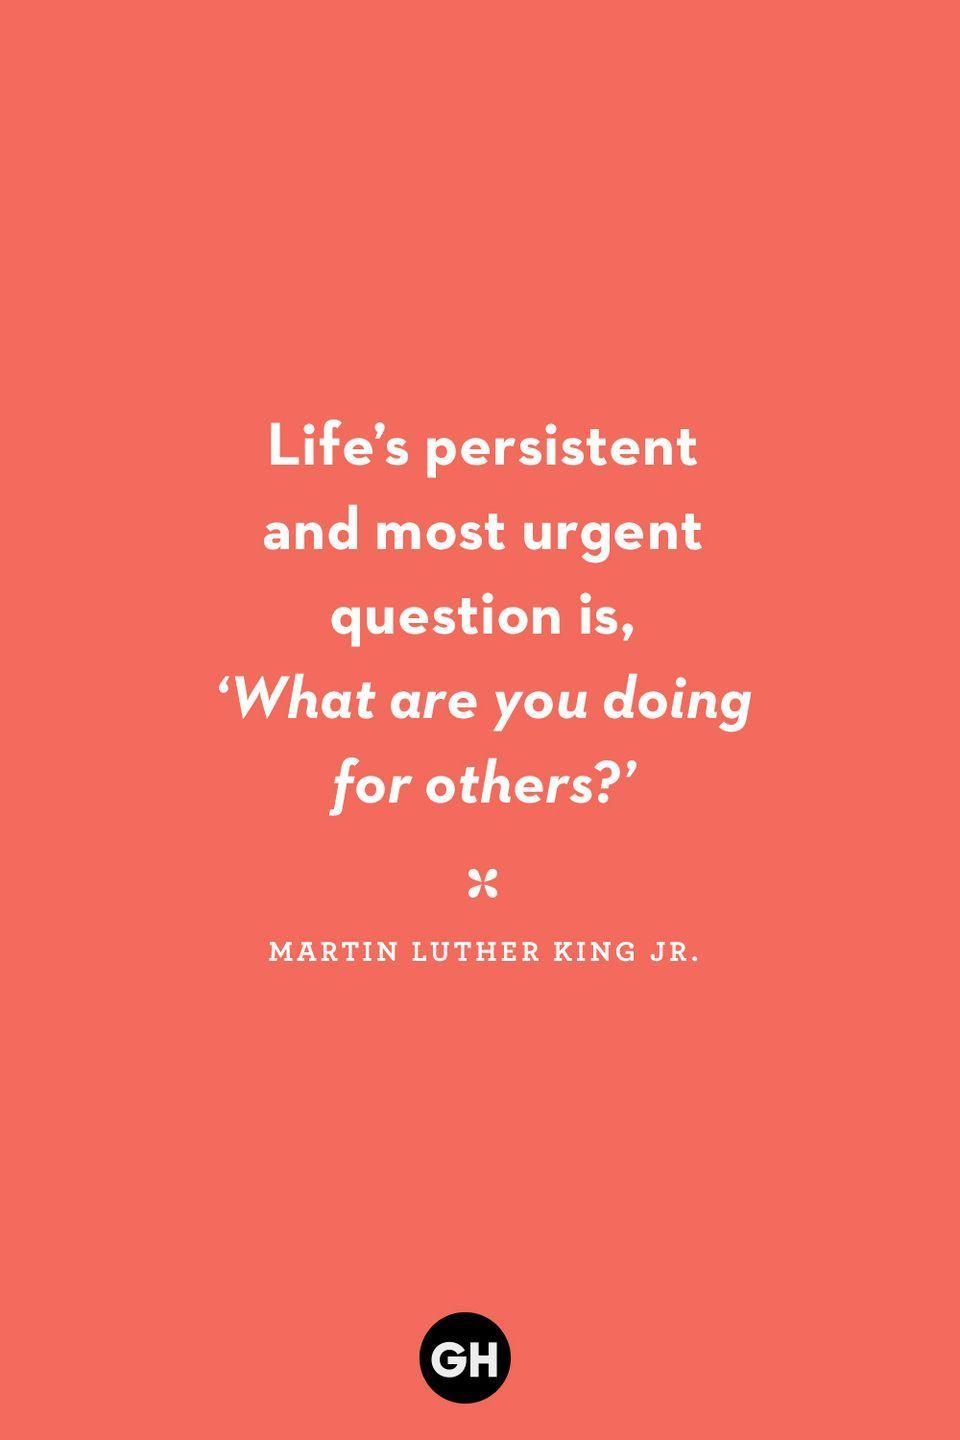 <p>Life's persistent and most urgent question is, 'What are you doing for others?</p>